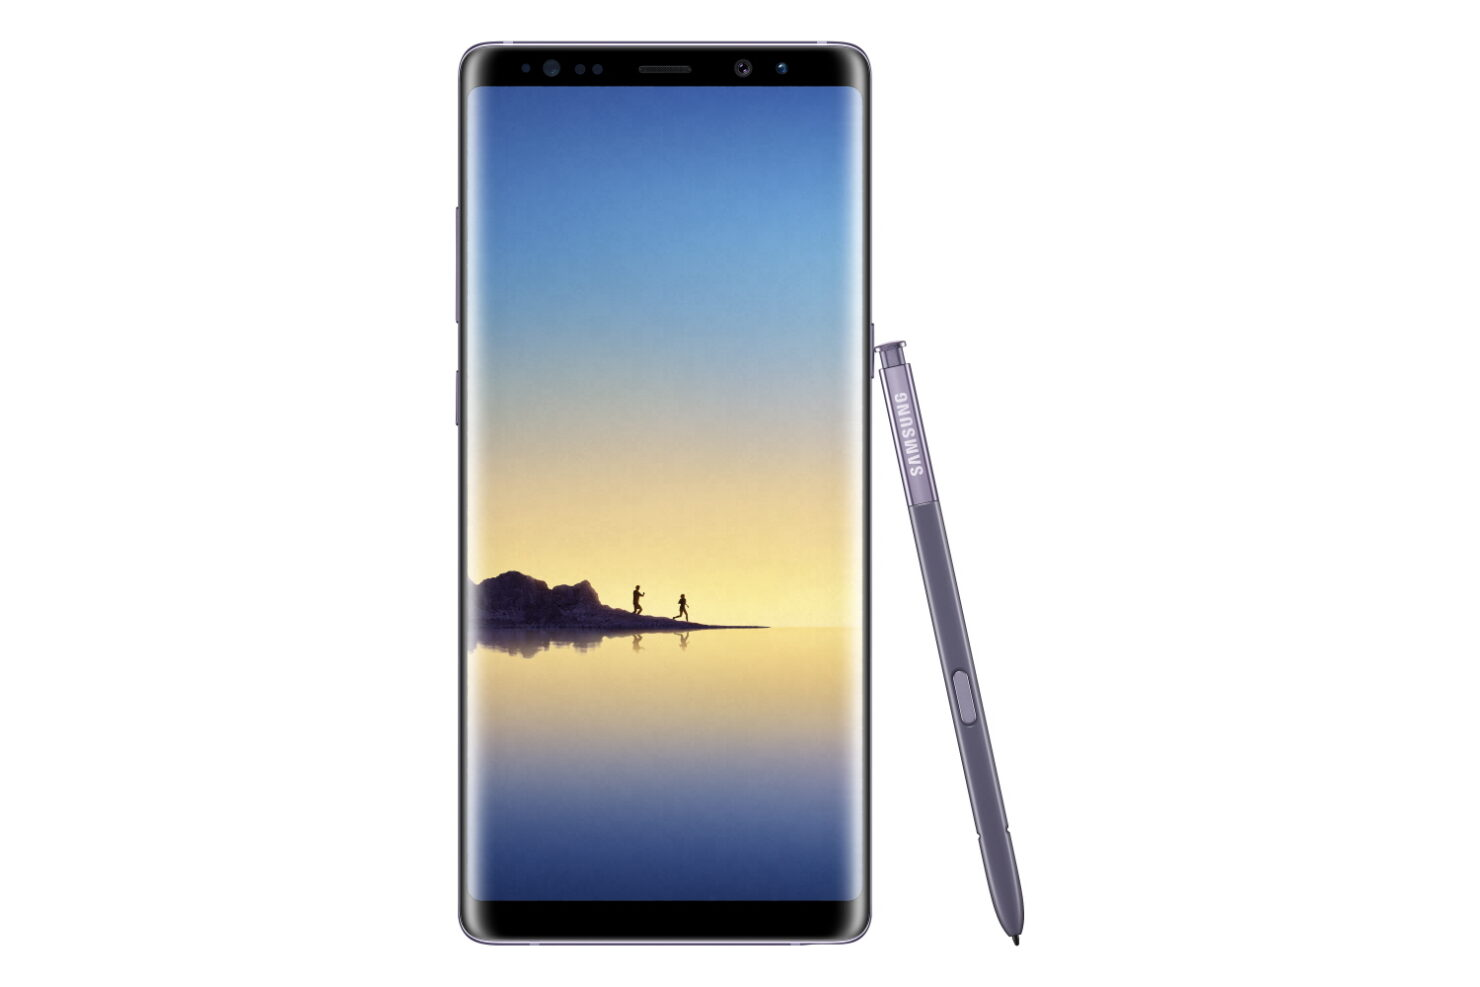 galaxynote8_front_pen_gray_hq